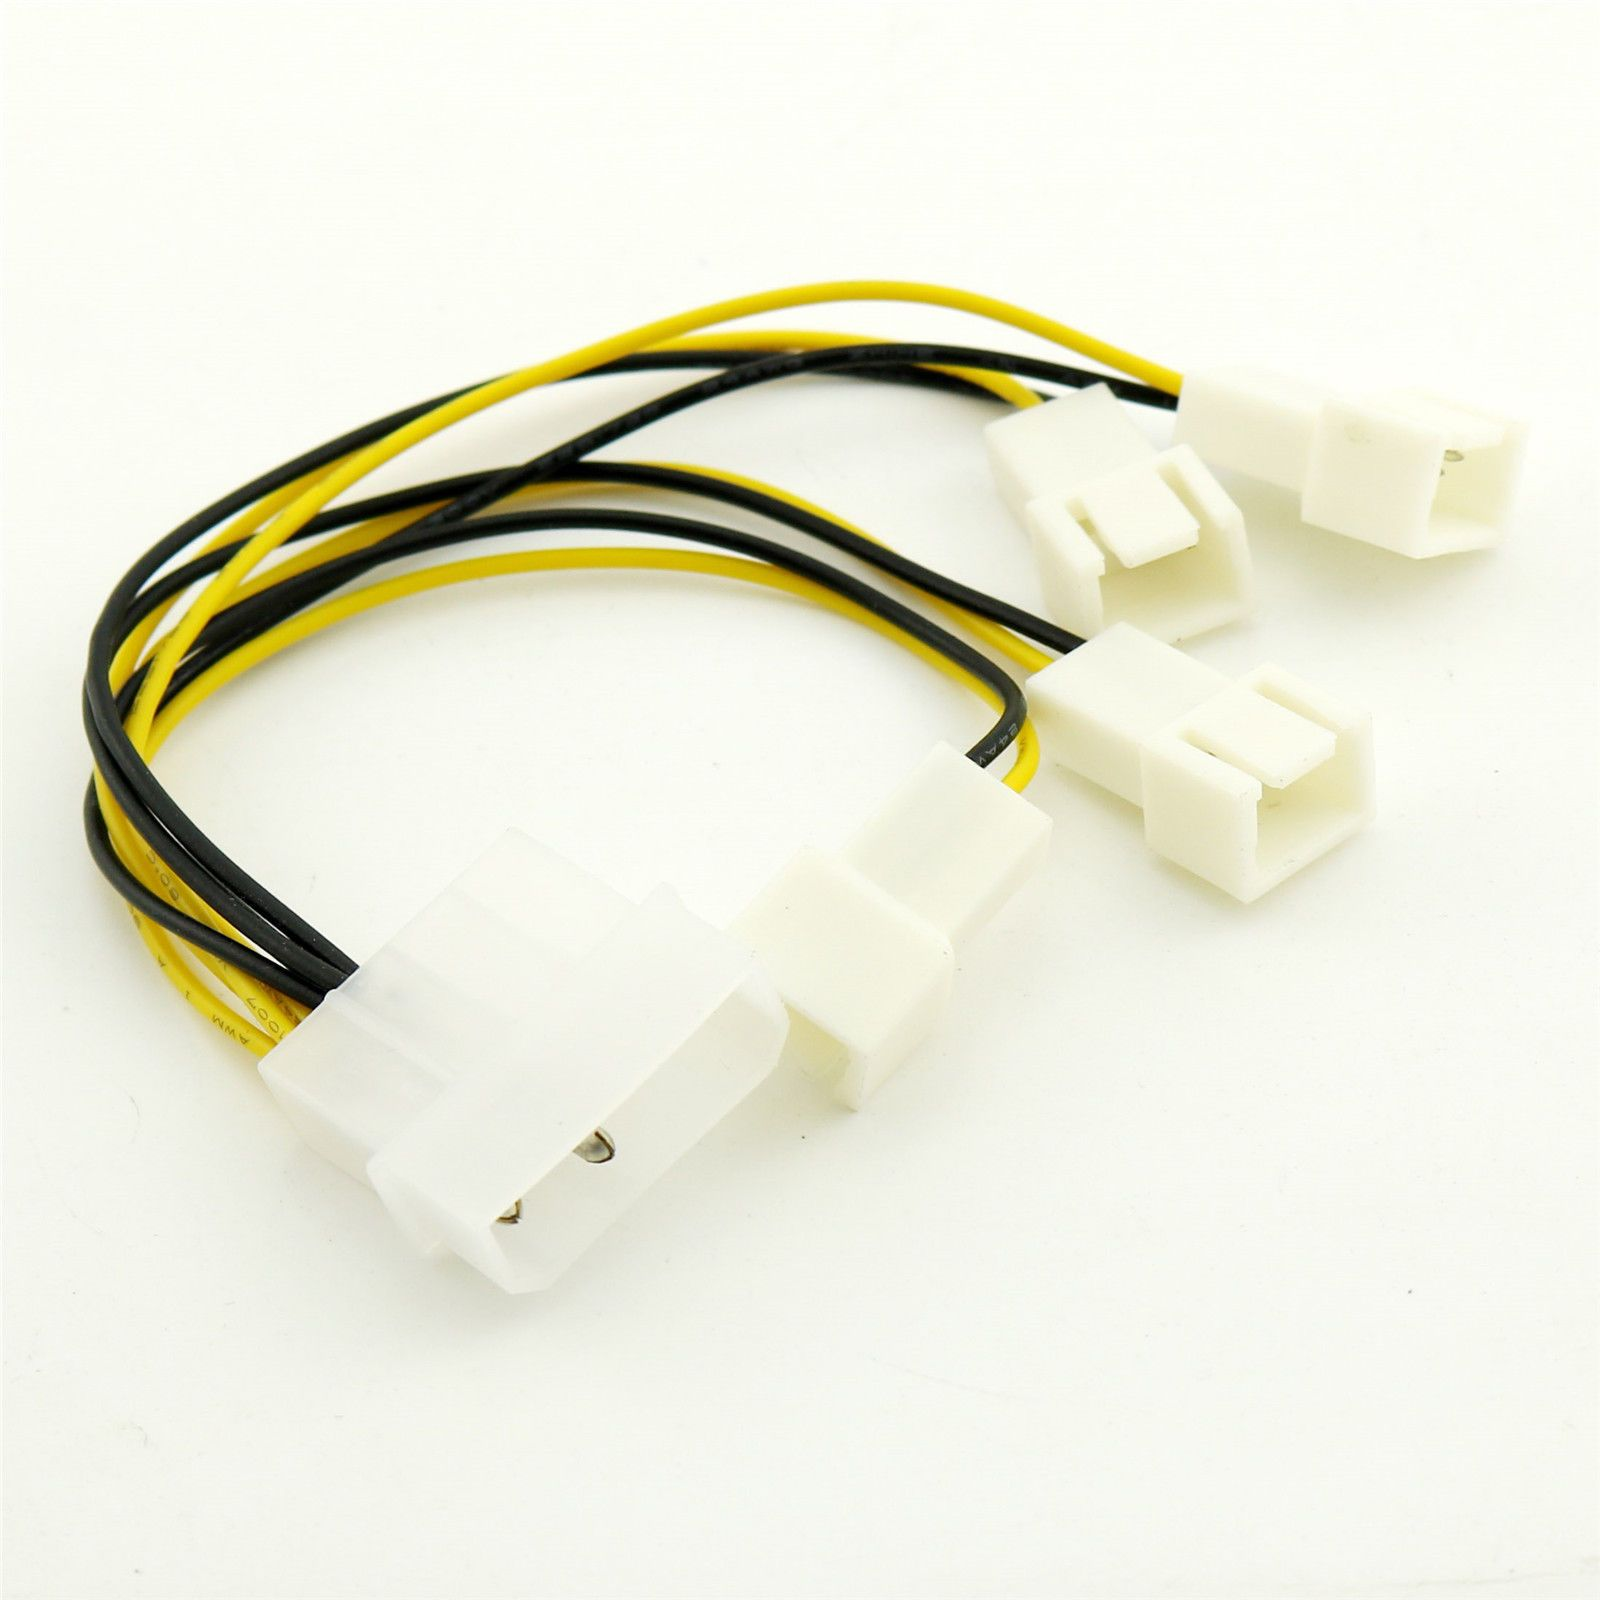 hight resolution of  1 39 1pc molex male to 4 way 3 pin computer power multi fan splitter adapter